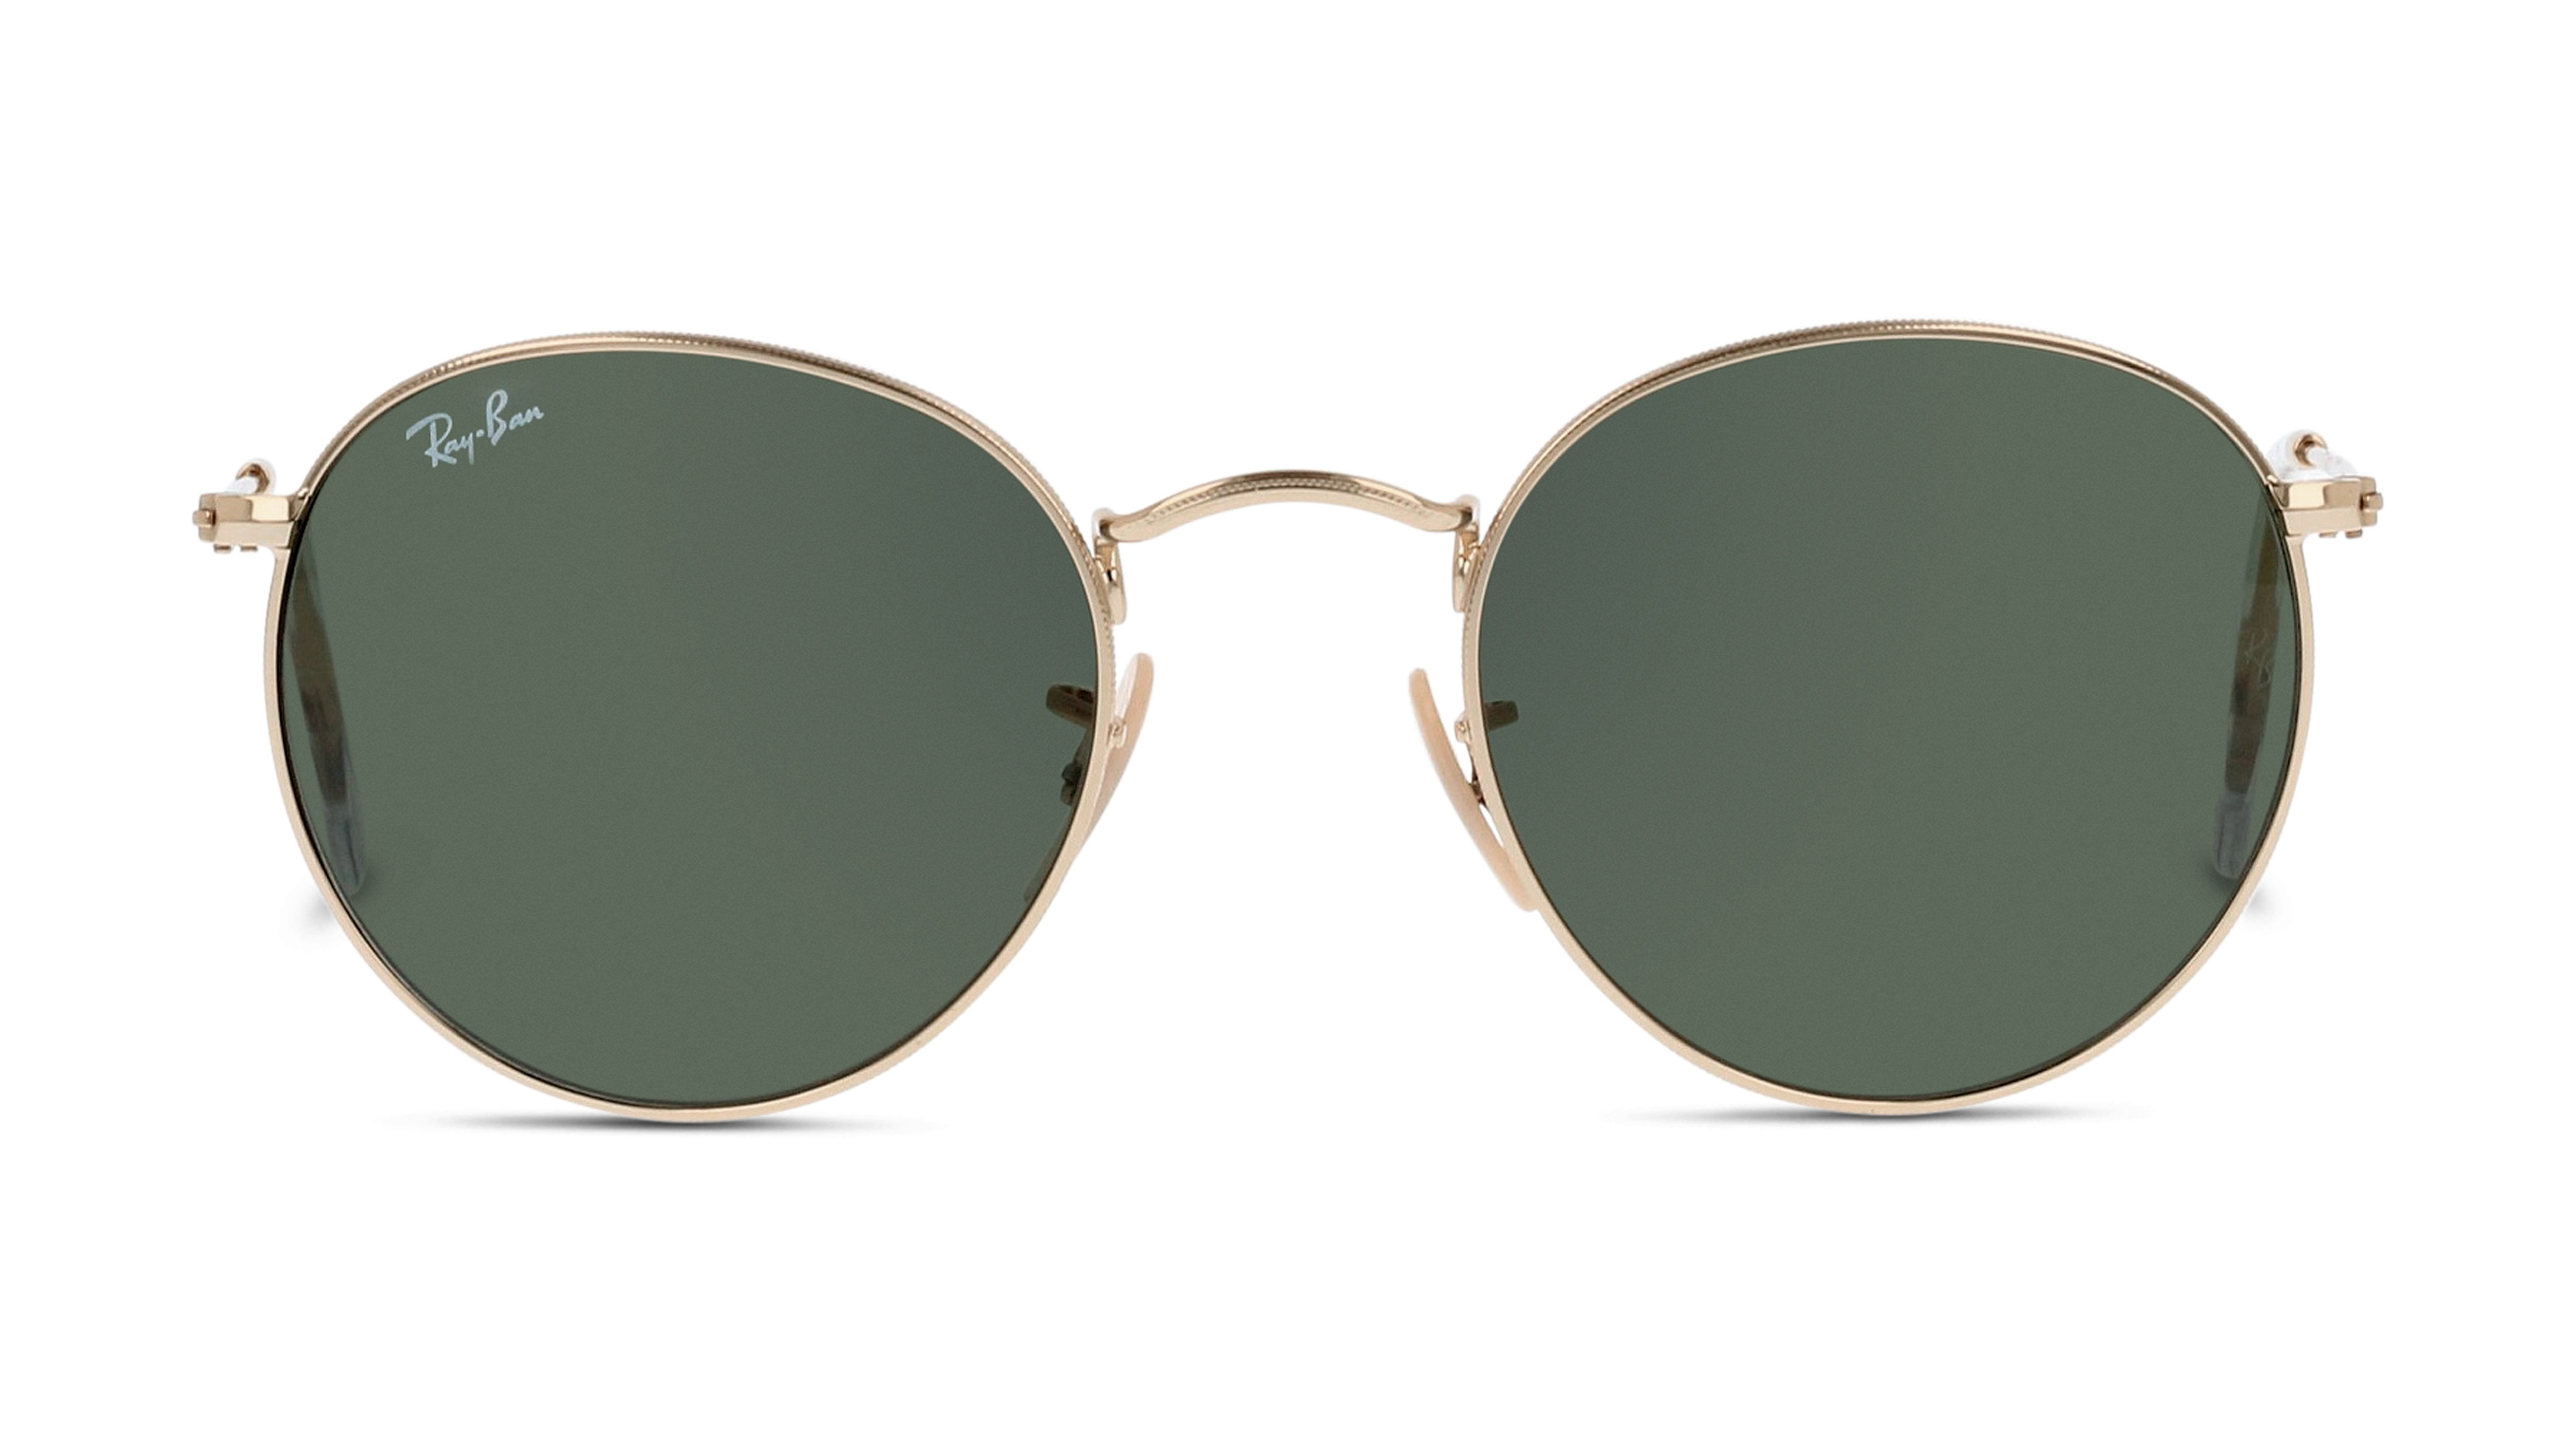 805289439899_Front_RayBan